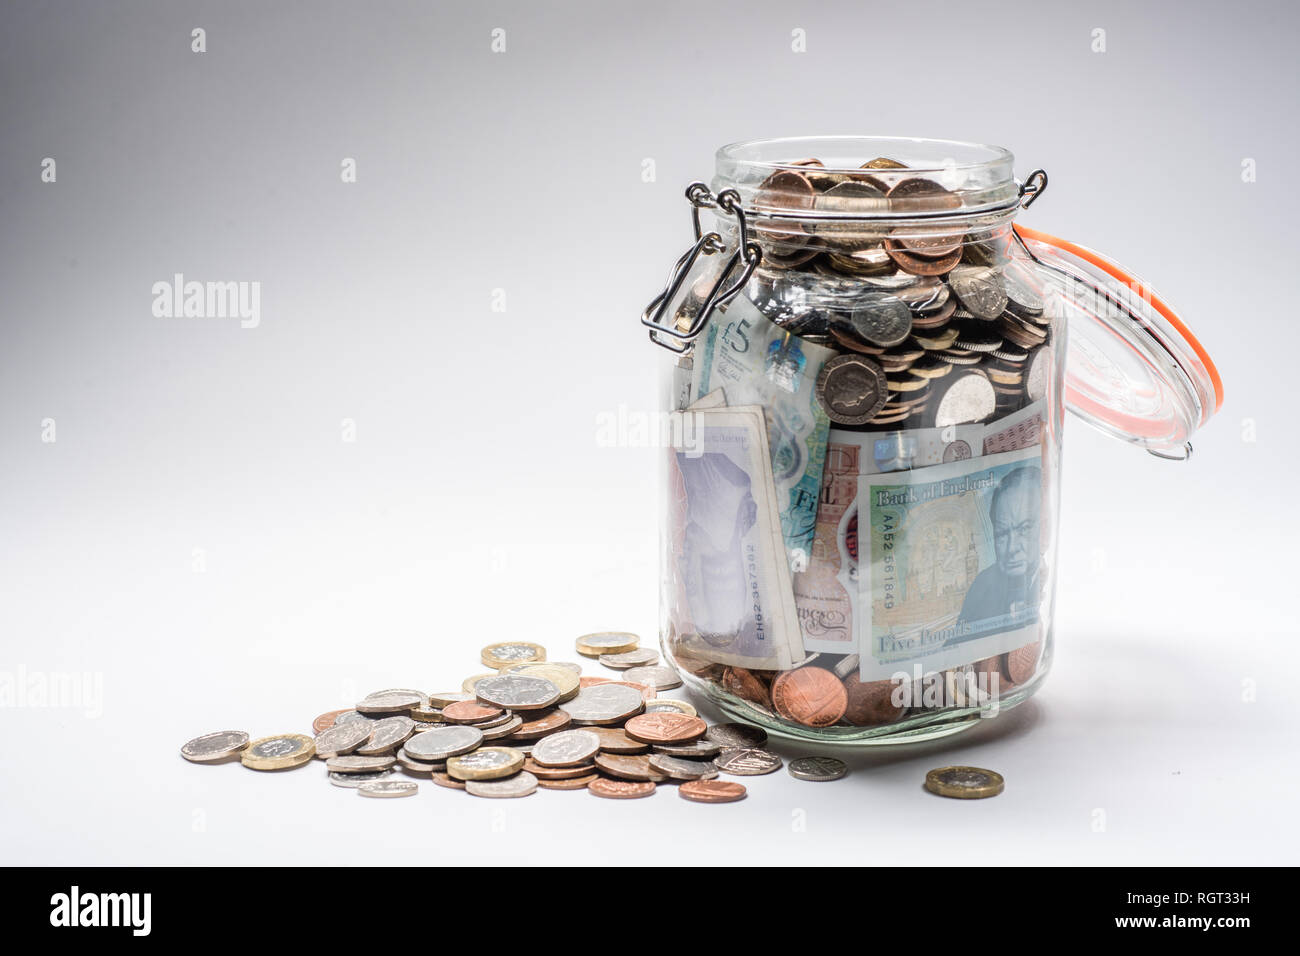 Savings UK - a glass storage jar completely full of british coins and notes, saved up.  Concept illustration for pension planning, rainy day fund, emergency money, home banking, cash in hand, accumulated wealth Stock Photo